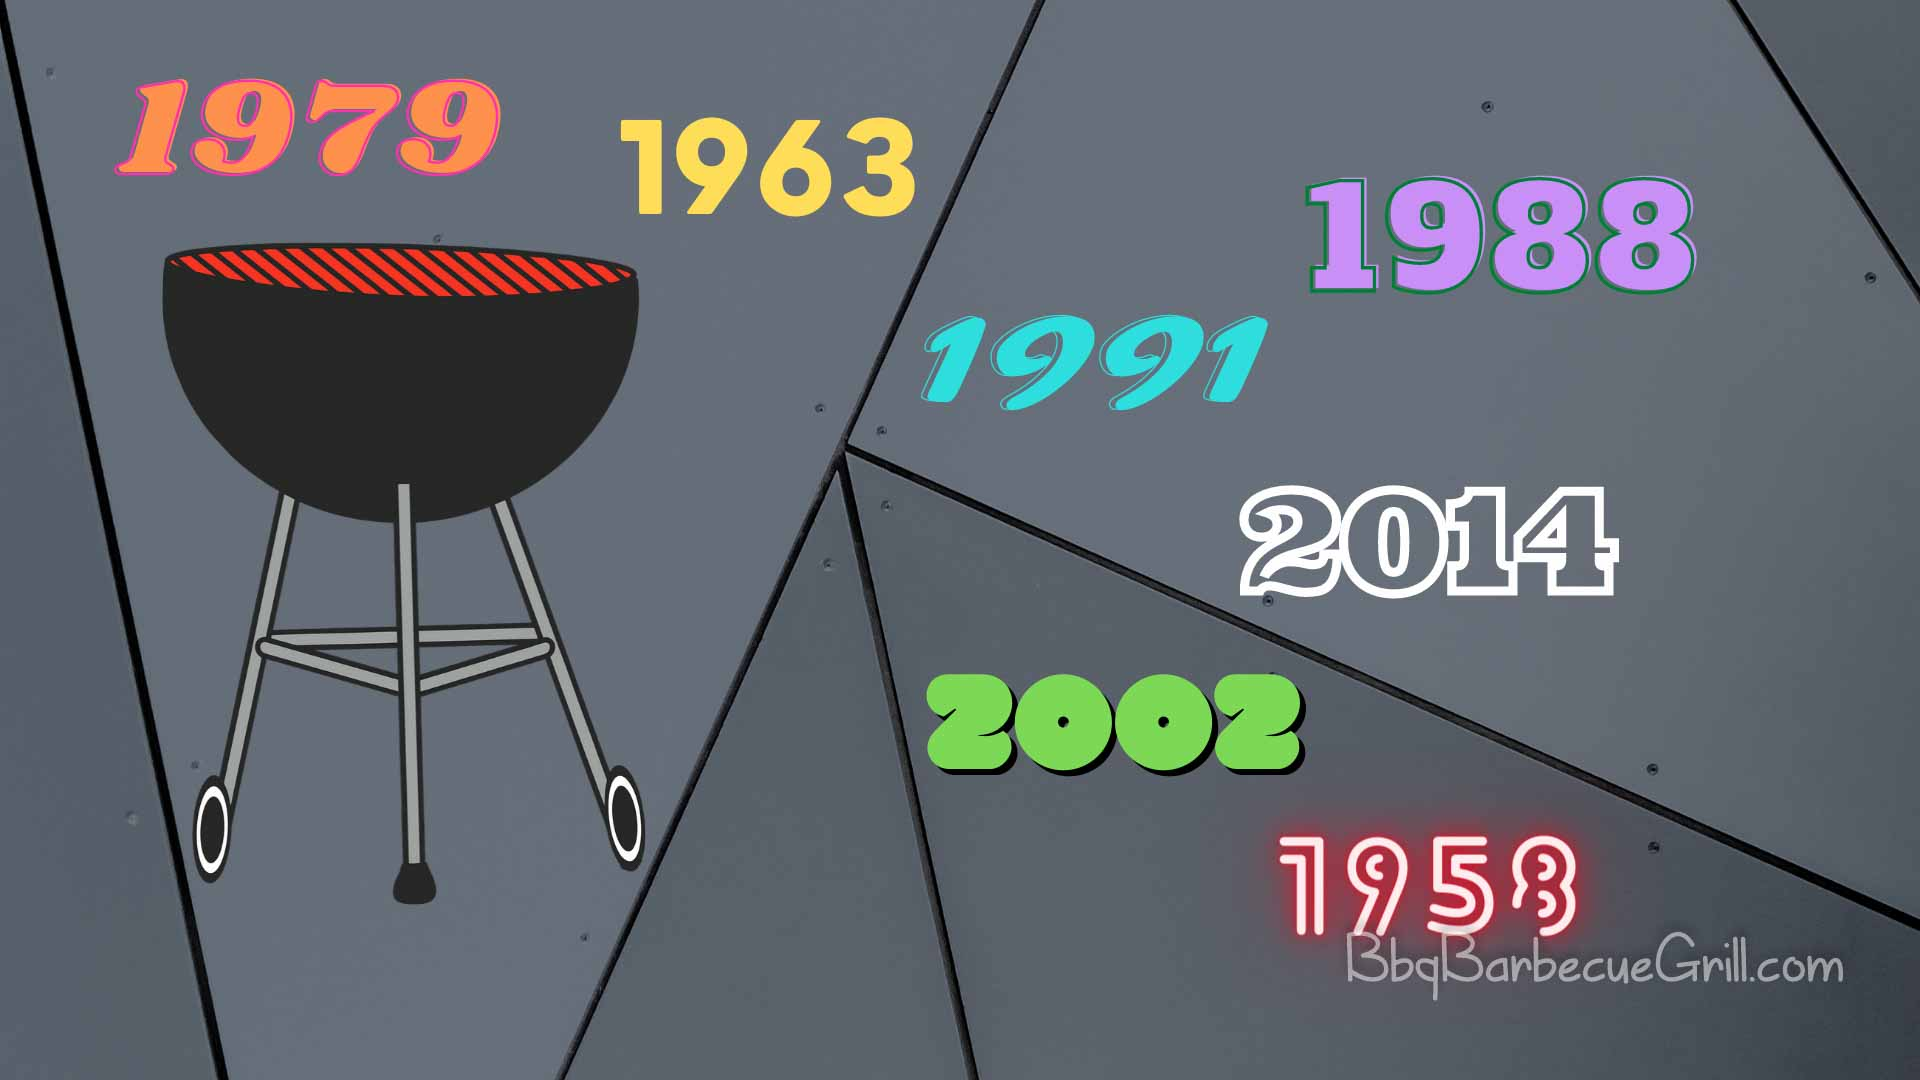 How old is my weber grill